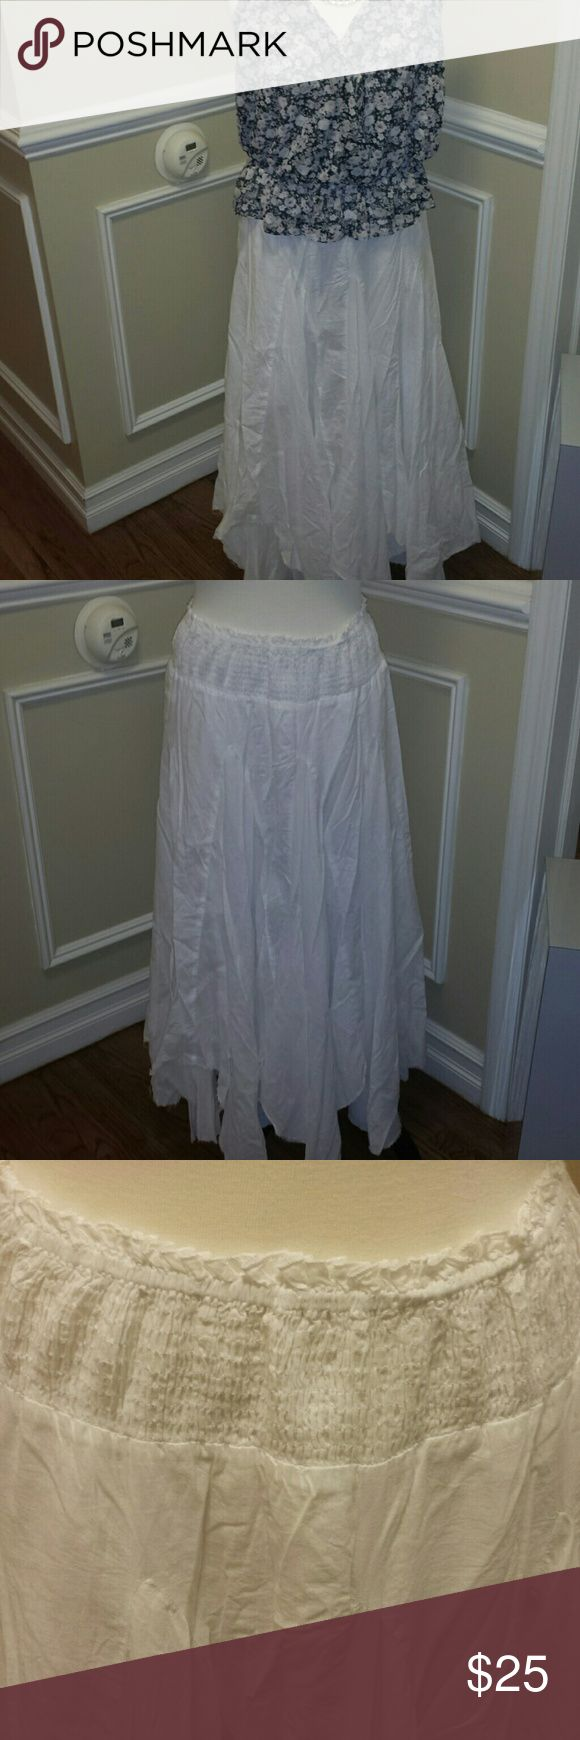 Summer maxi skirt White maxi skirt perfect for summer with smocked waistband.  pure 100% cotton voile. Had uneven raw hem, very boho chick. Wore only once  no rips holes or stains,  no inside tag but was a large. Waist 15 in across unstretched but can easily stretch much more sick it's puckered and smocked at the waist. Skirts Maxi